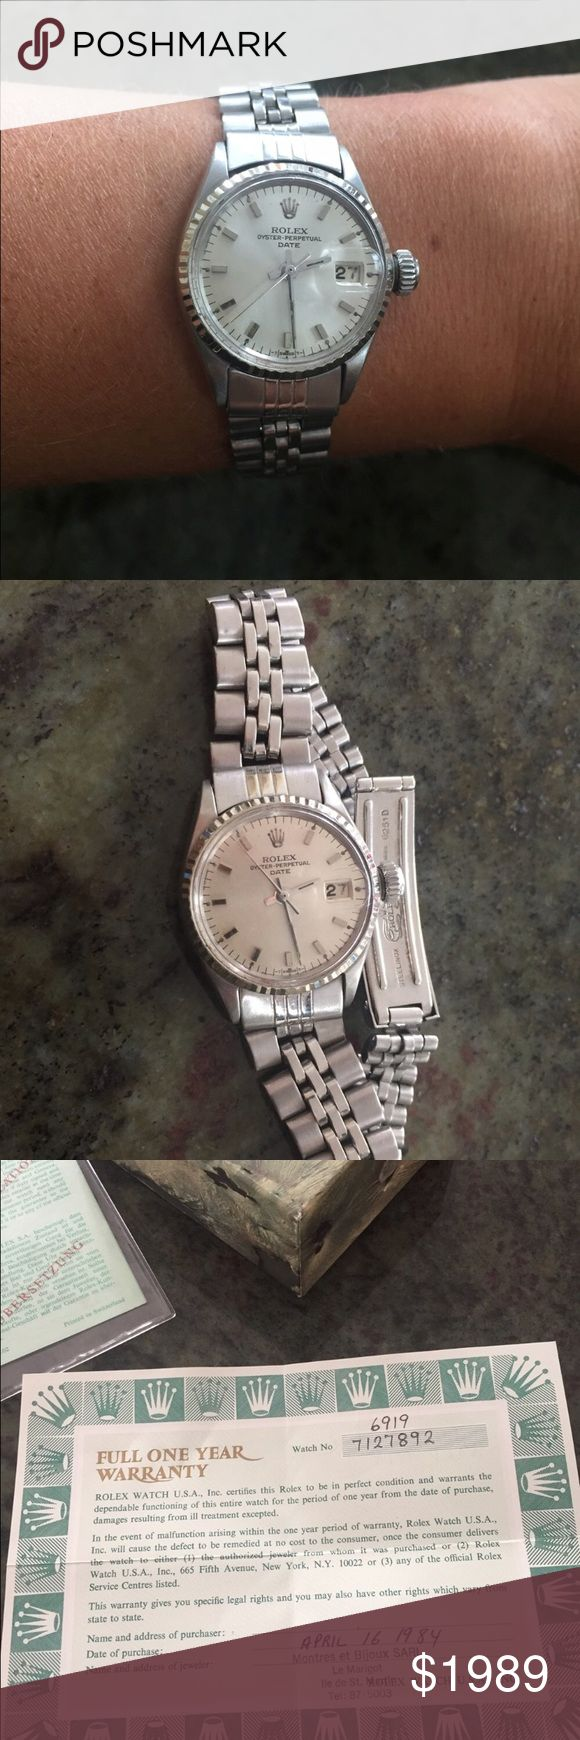 Vintage Rolex Oyster Perpetual Date Ladies Watch Vintage Rolex Oyster Perpetual Date Ladies Watch. With original box and papers. 1984. Vintage Condition Stainless Steel 100% Authentic Rolex Accessories Watches